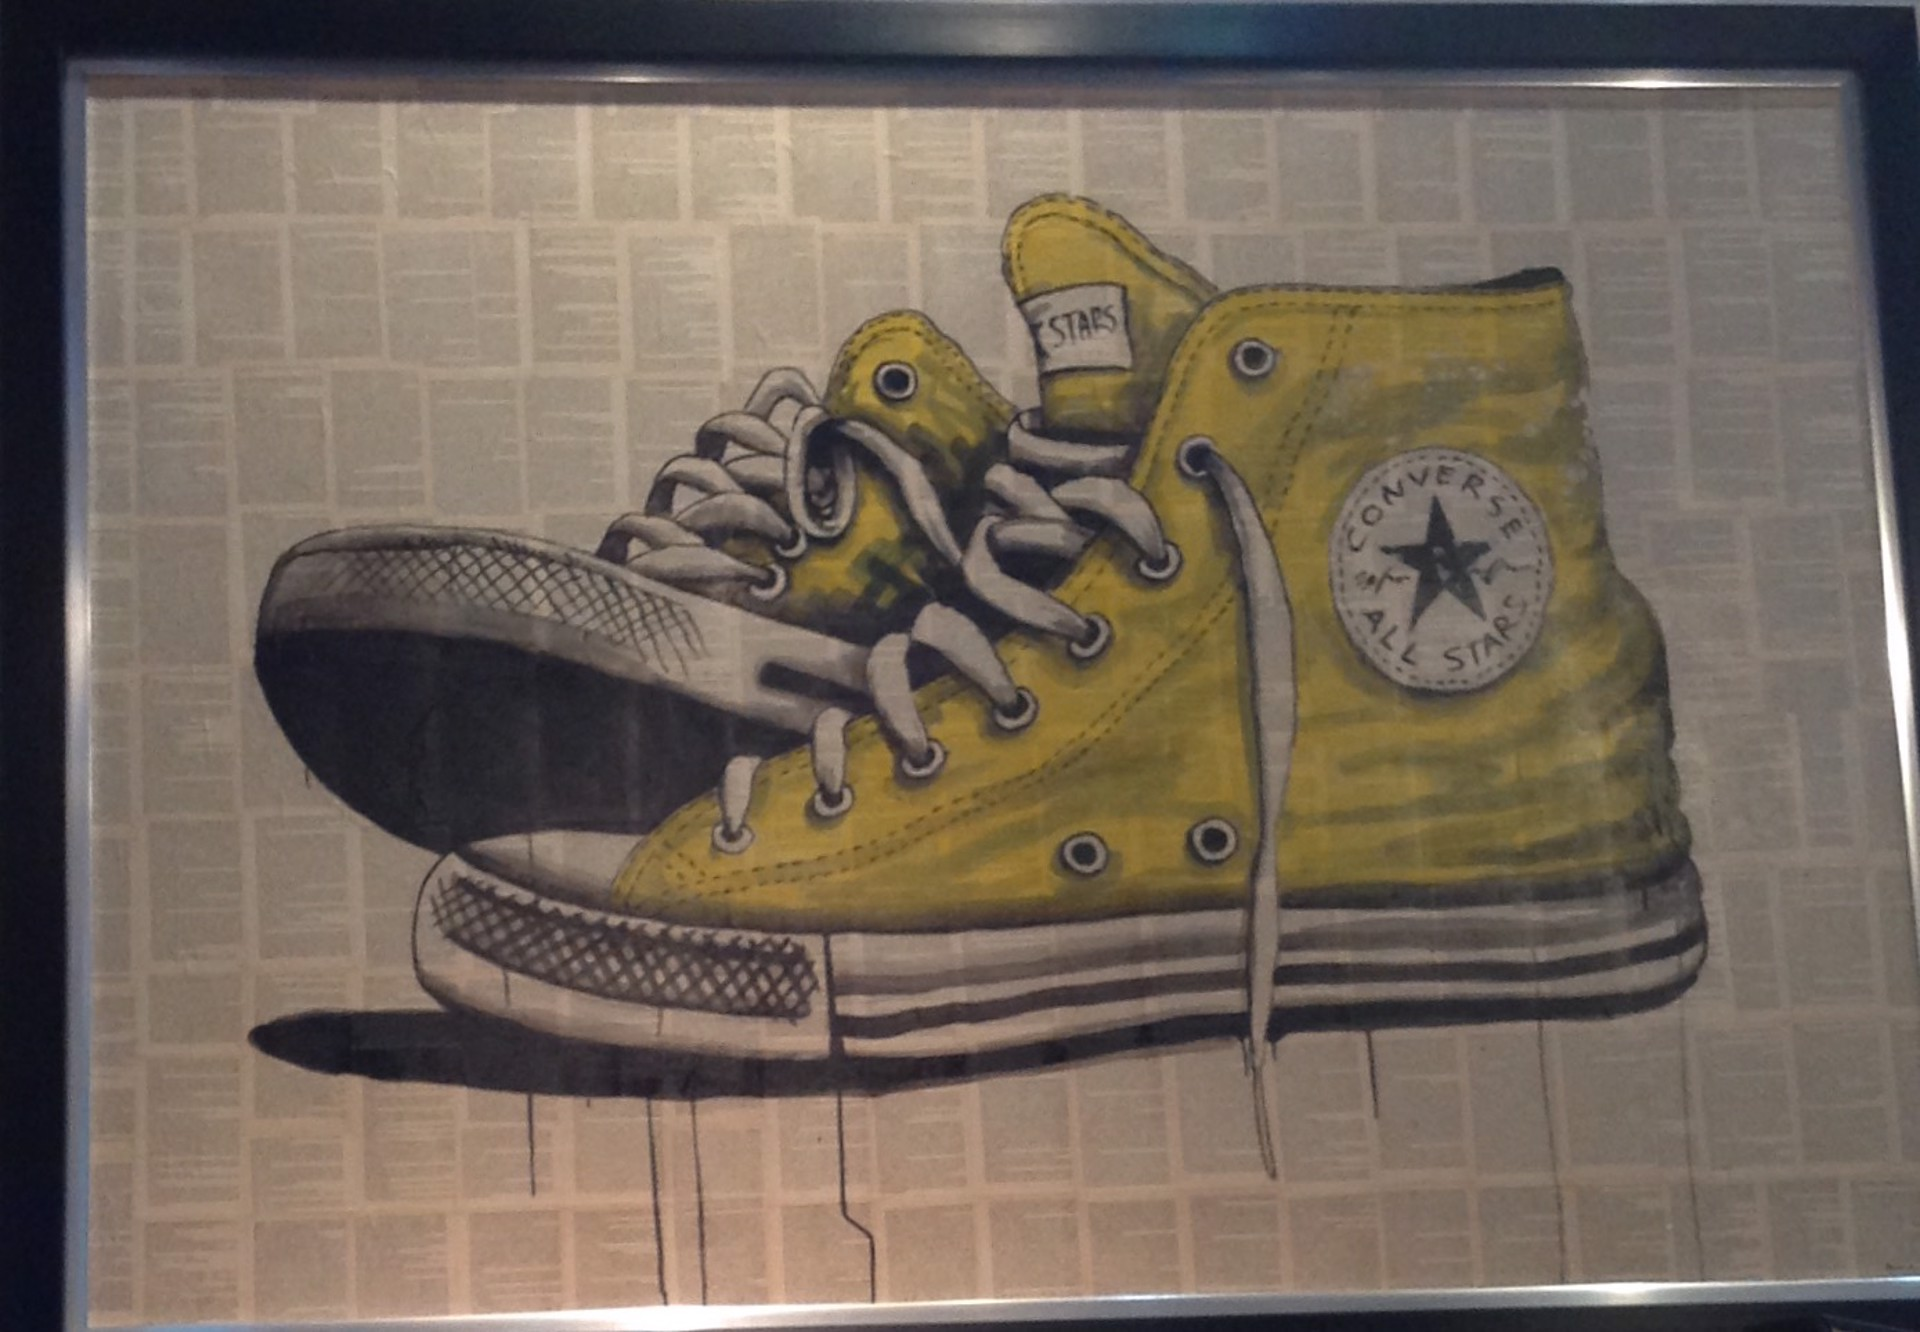 Shoescape Yellow Converse by David Mir